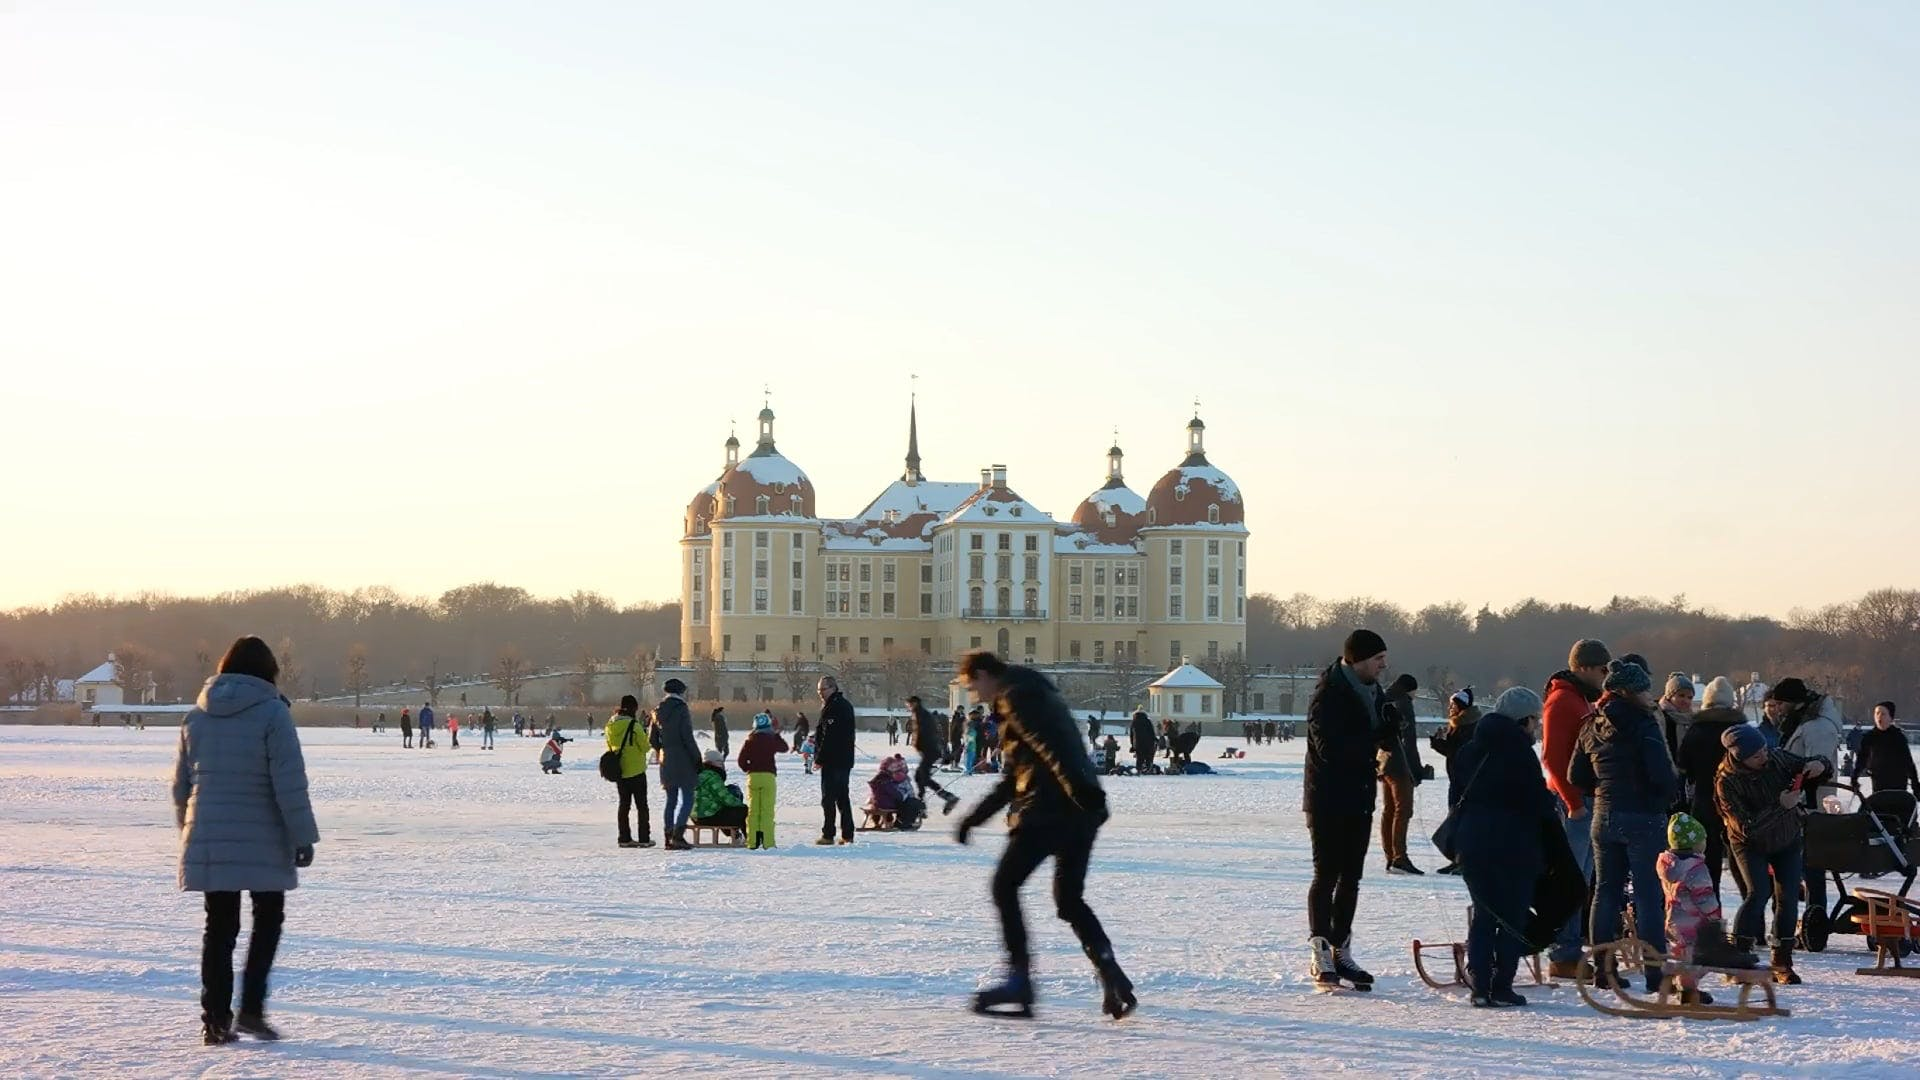 People Enjoying The Winter Snow